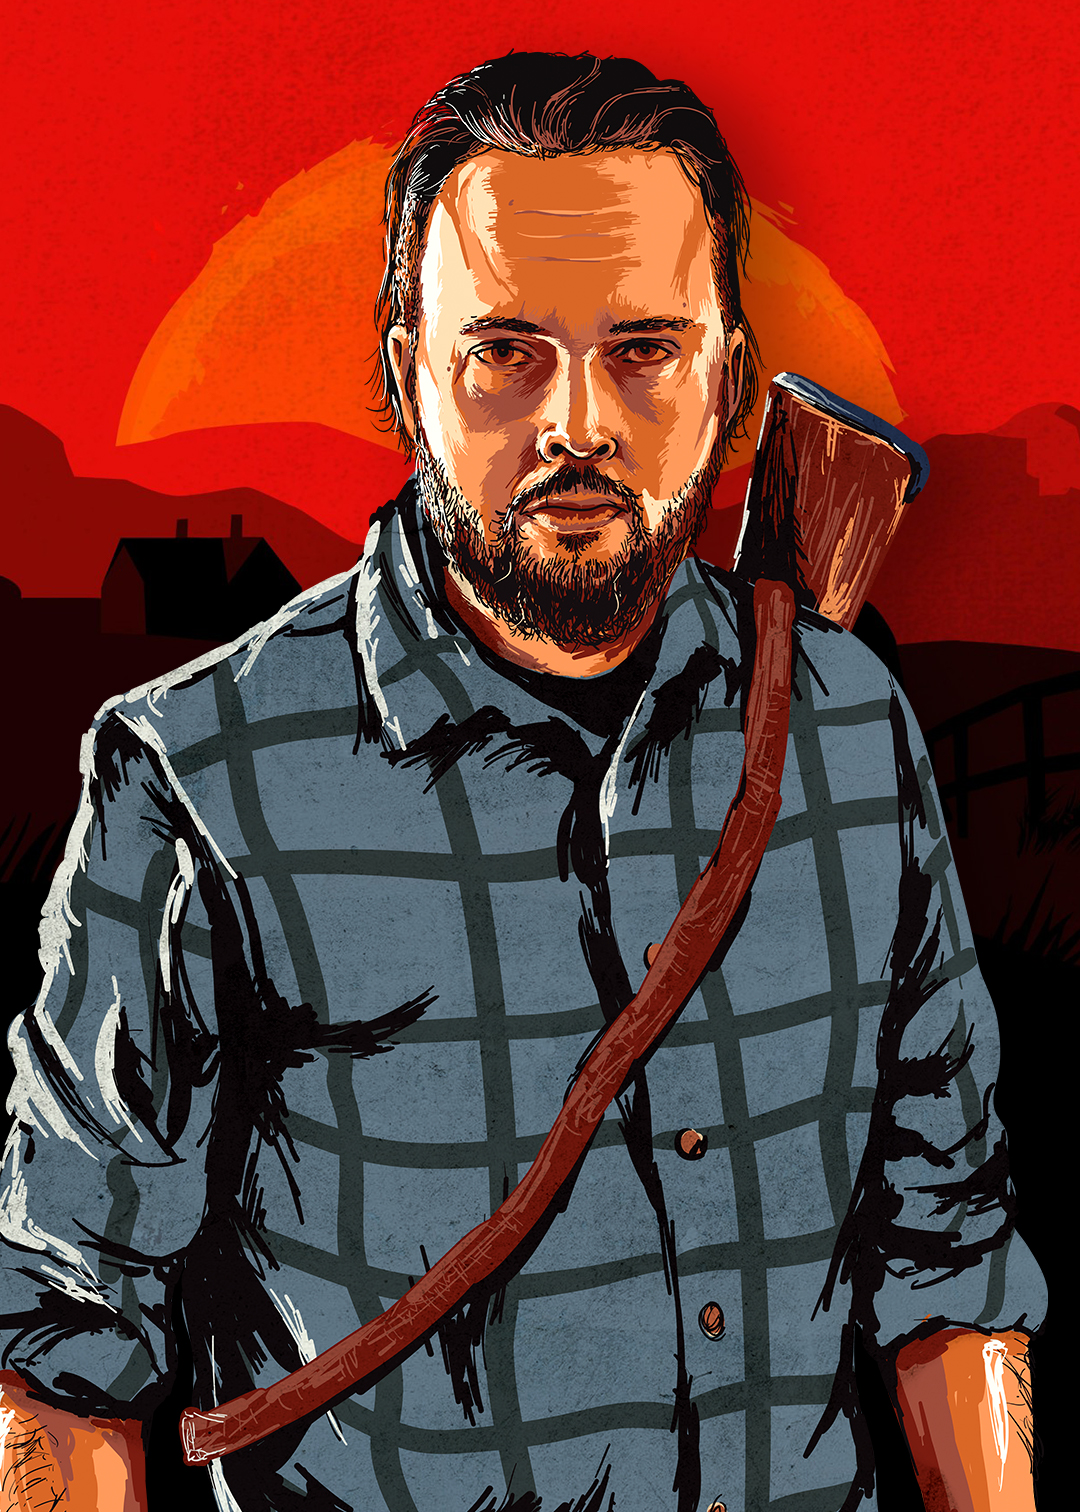 Red Dead Redemption Image final